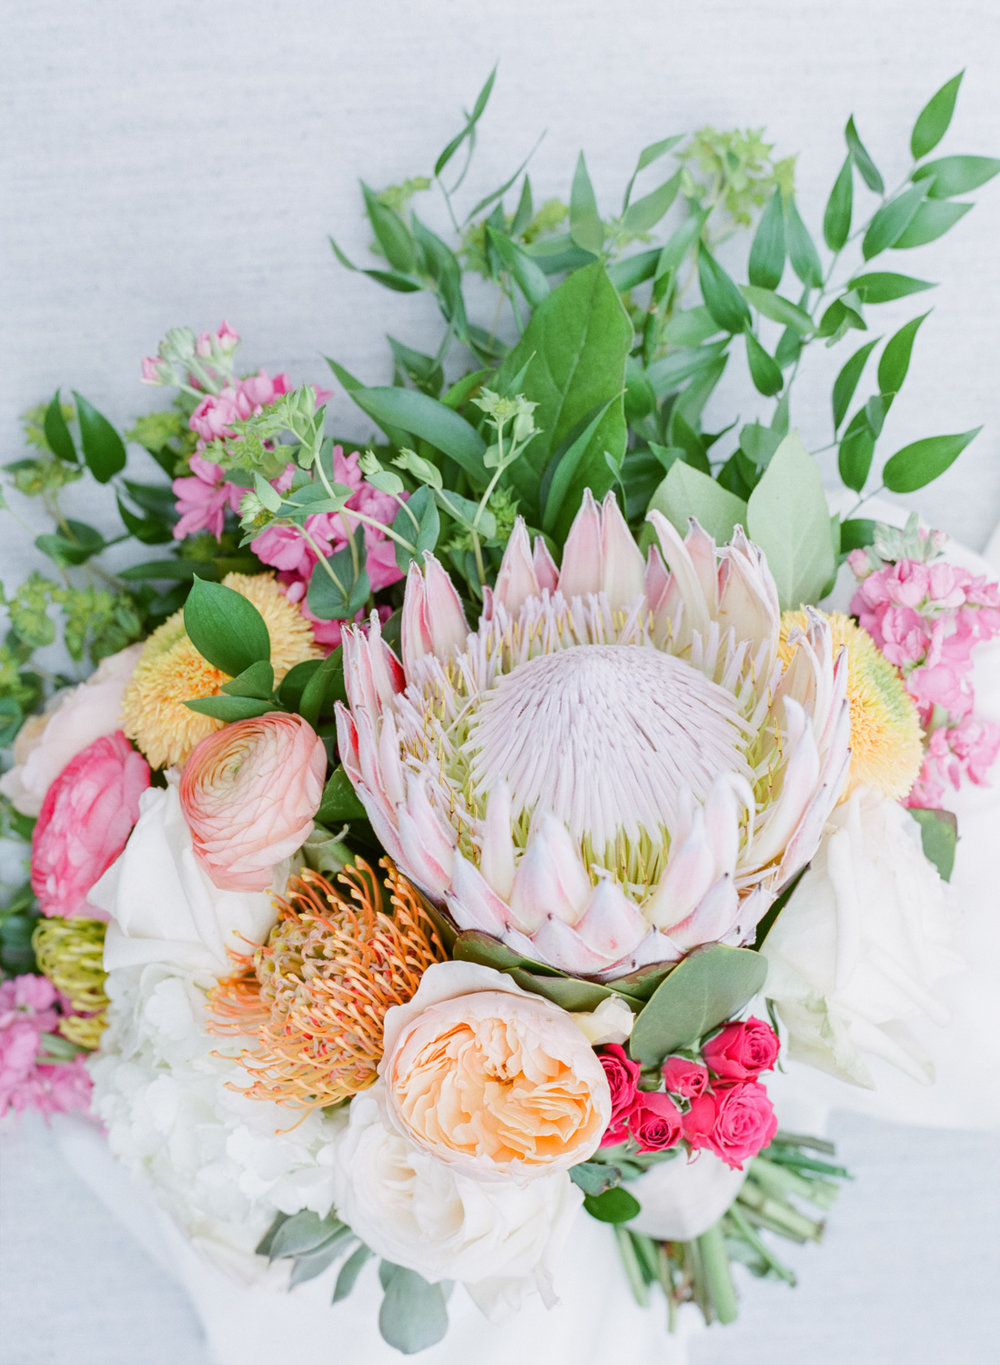 Large, colorful bouquet containing protea